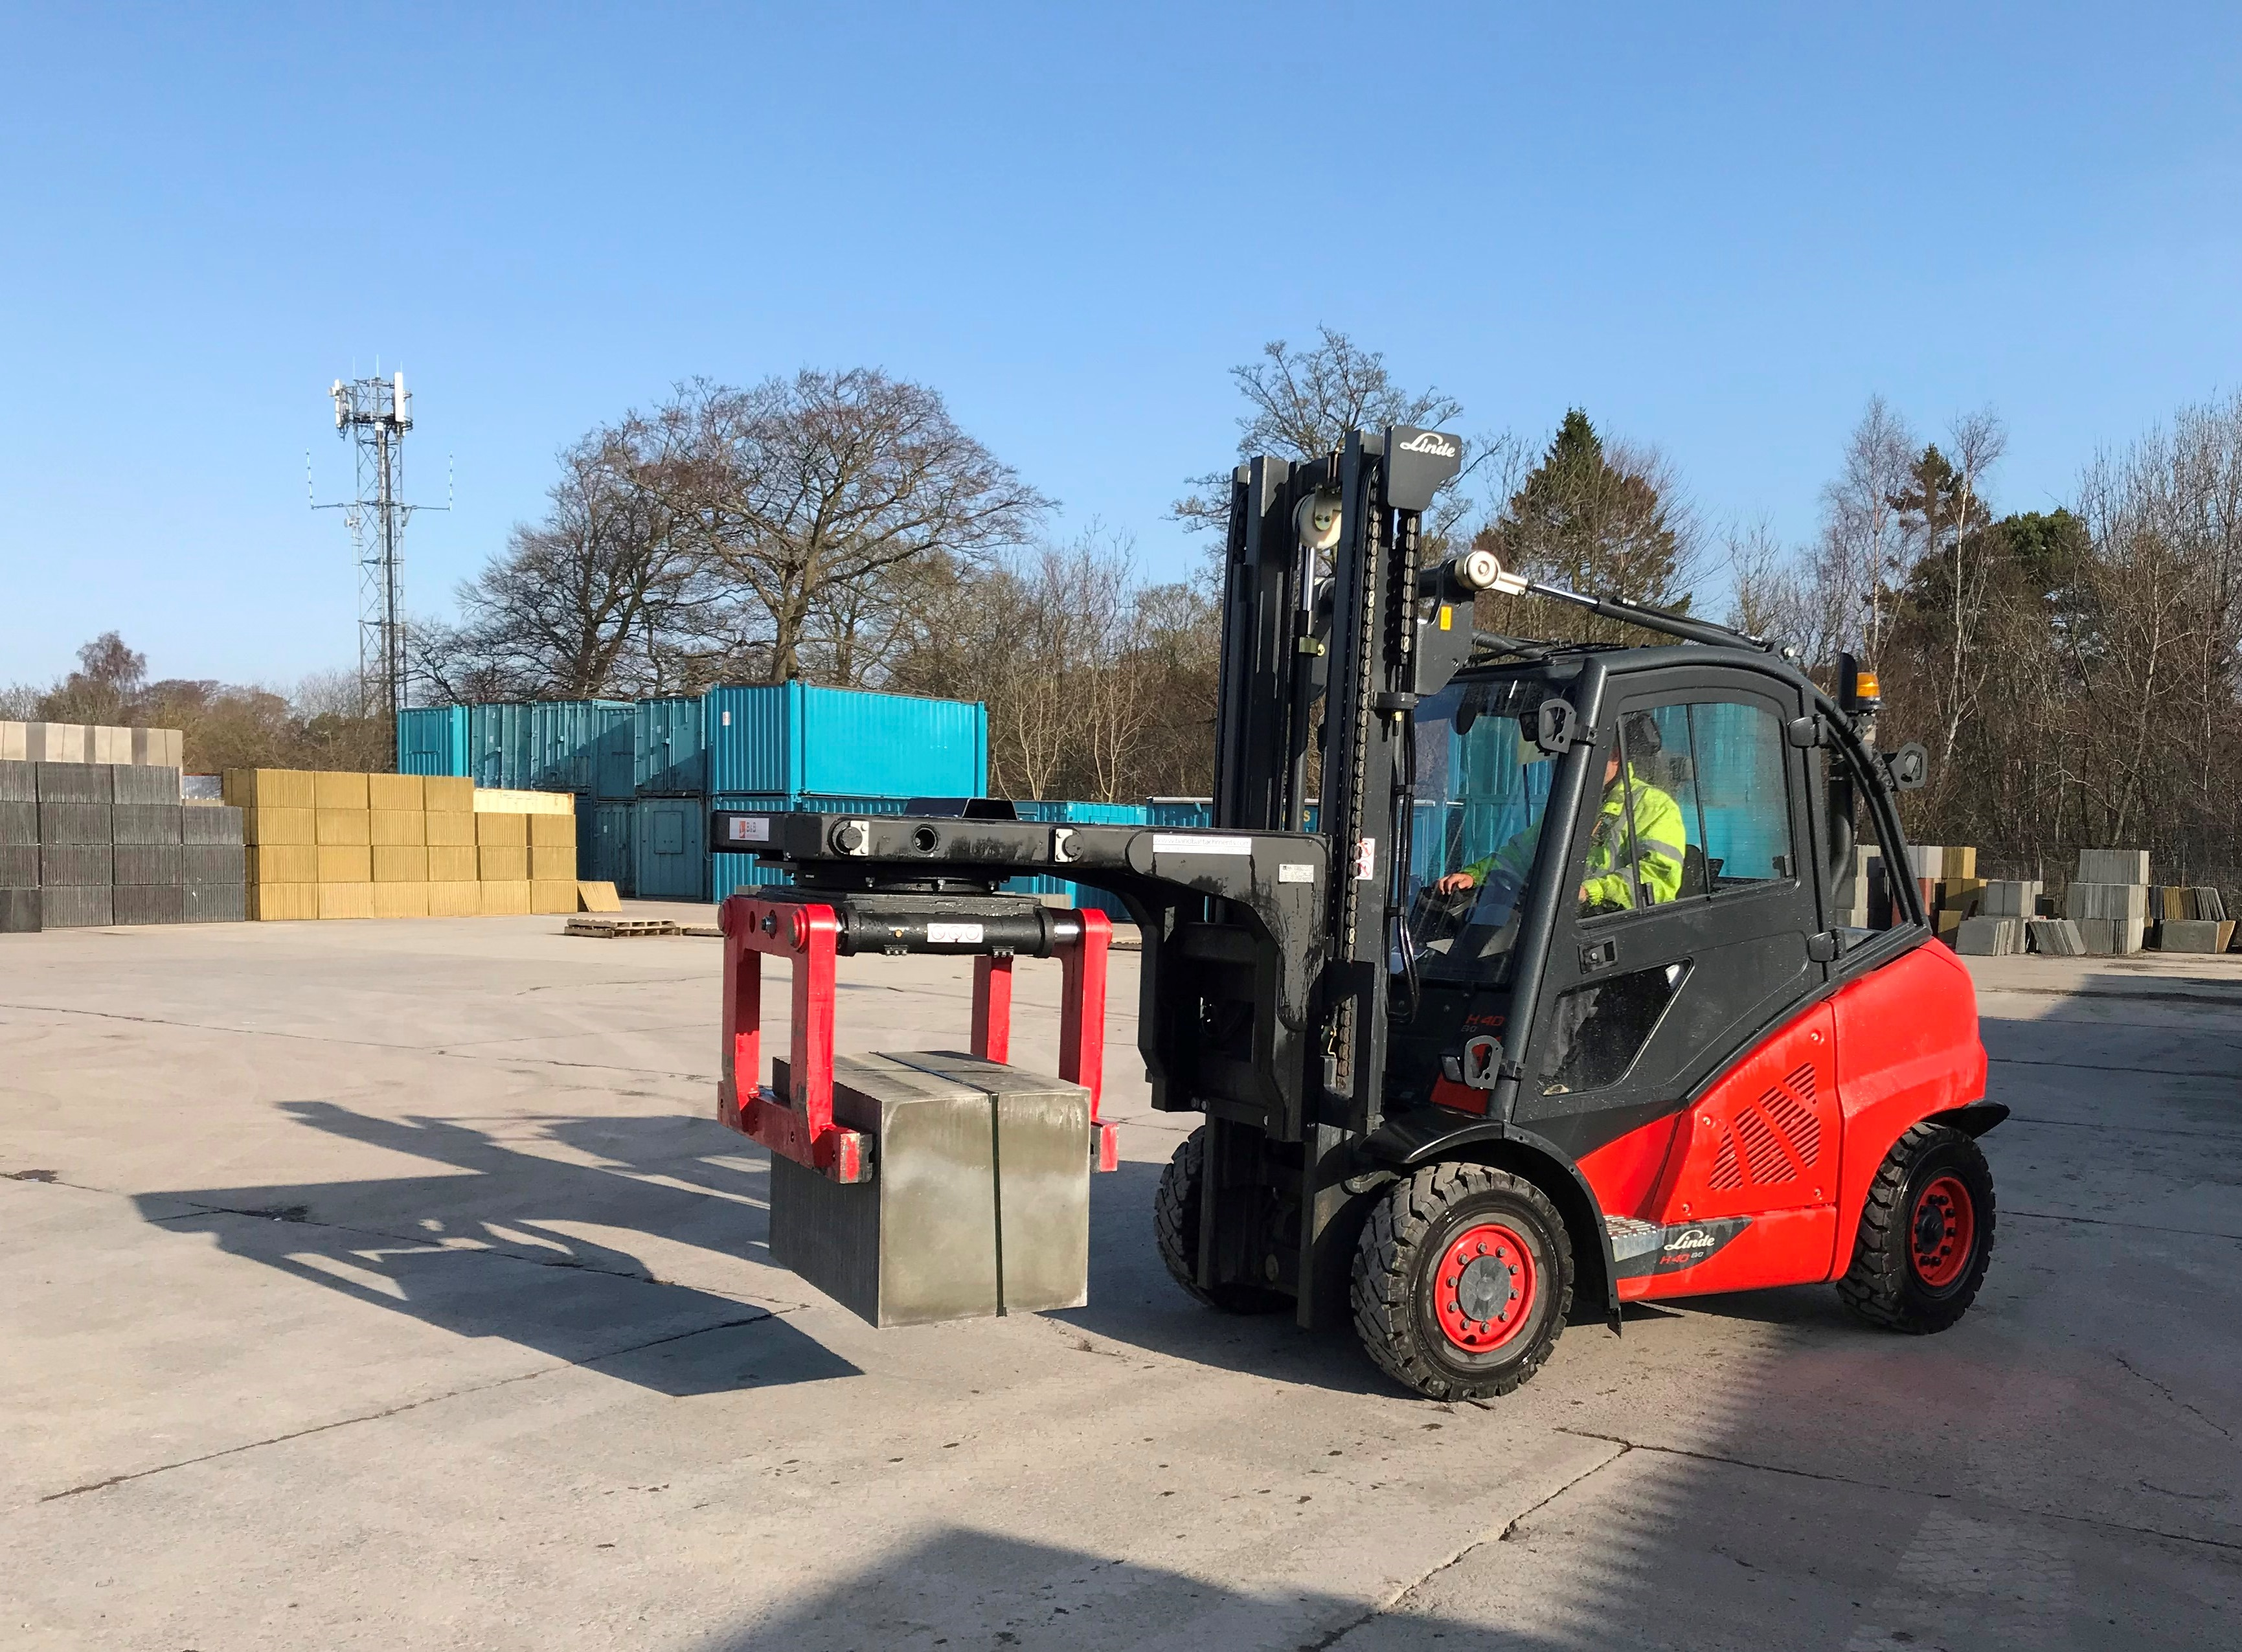 B&B Attachments Provide Handling Solutions to Concrete Products (Kirkcaldy) Limited